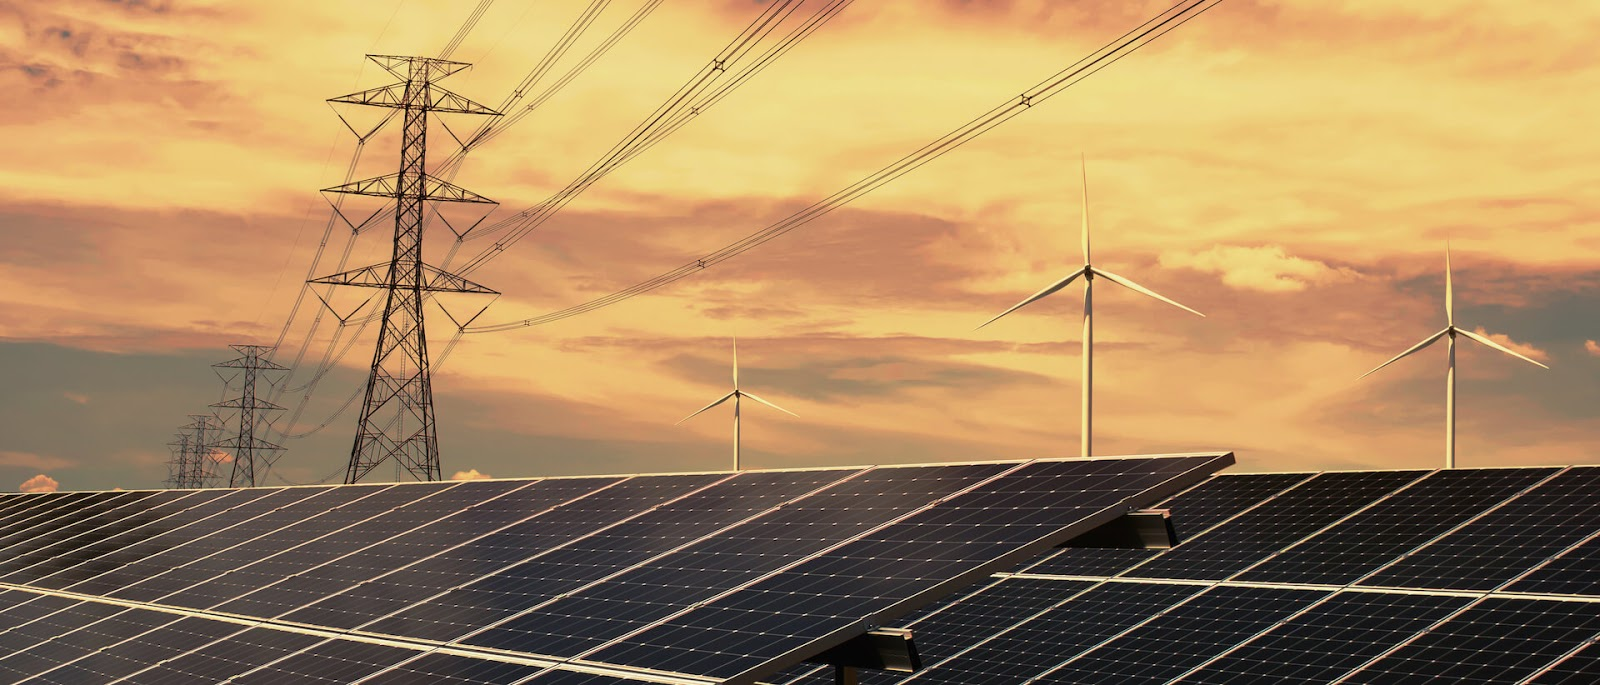 Sunset view of solar panels, electricity lines and windmills